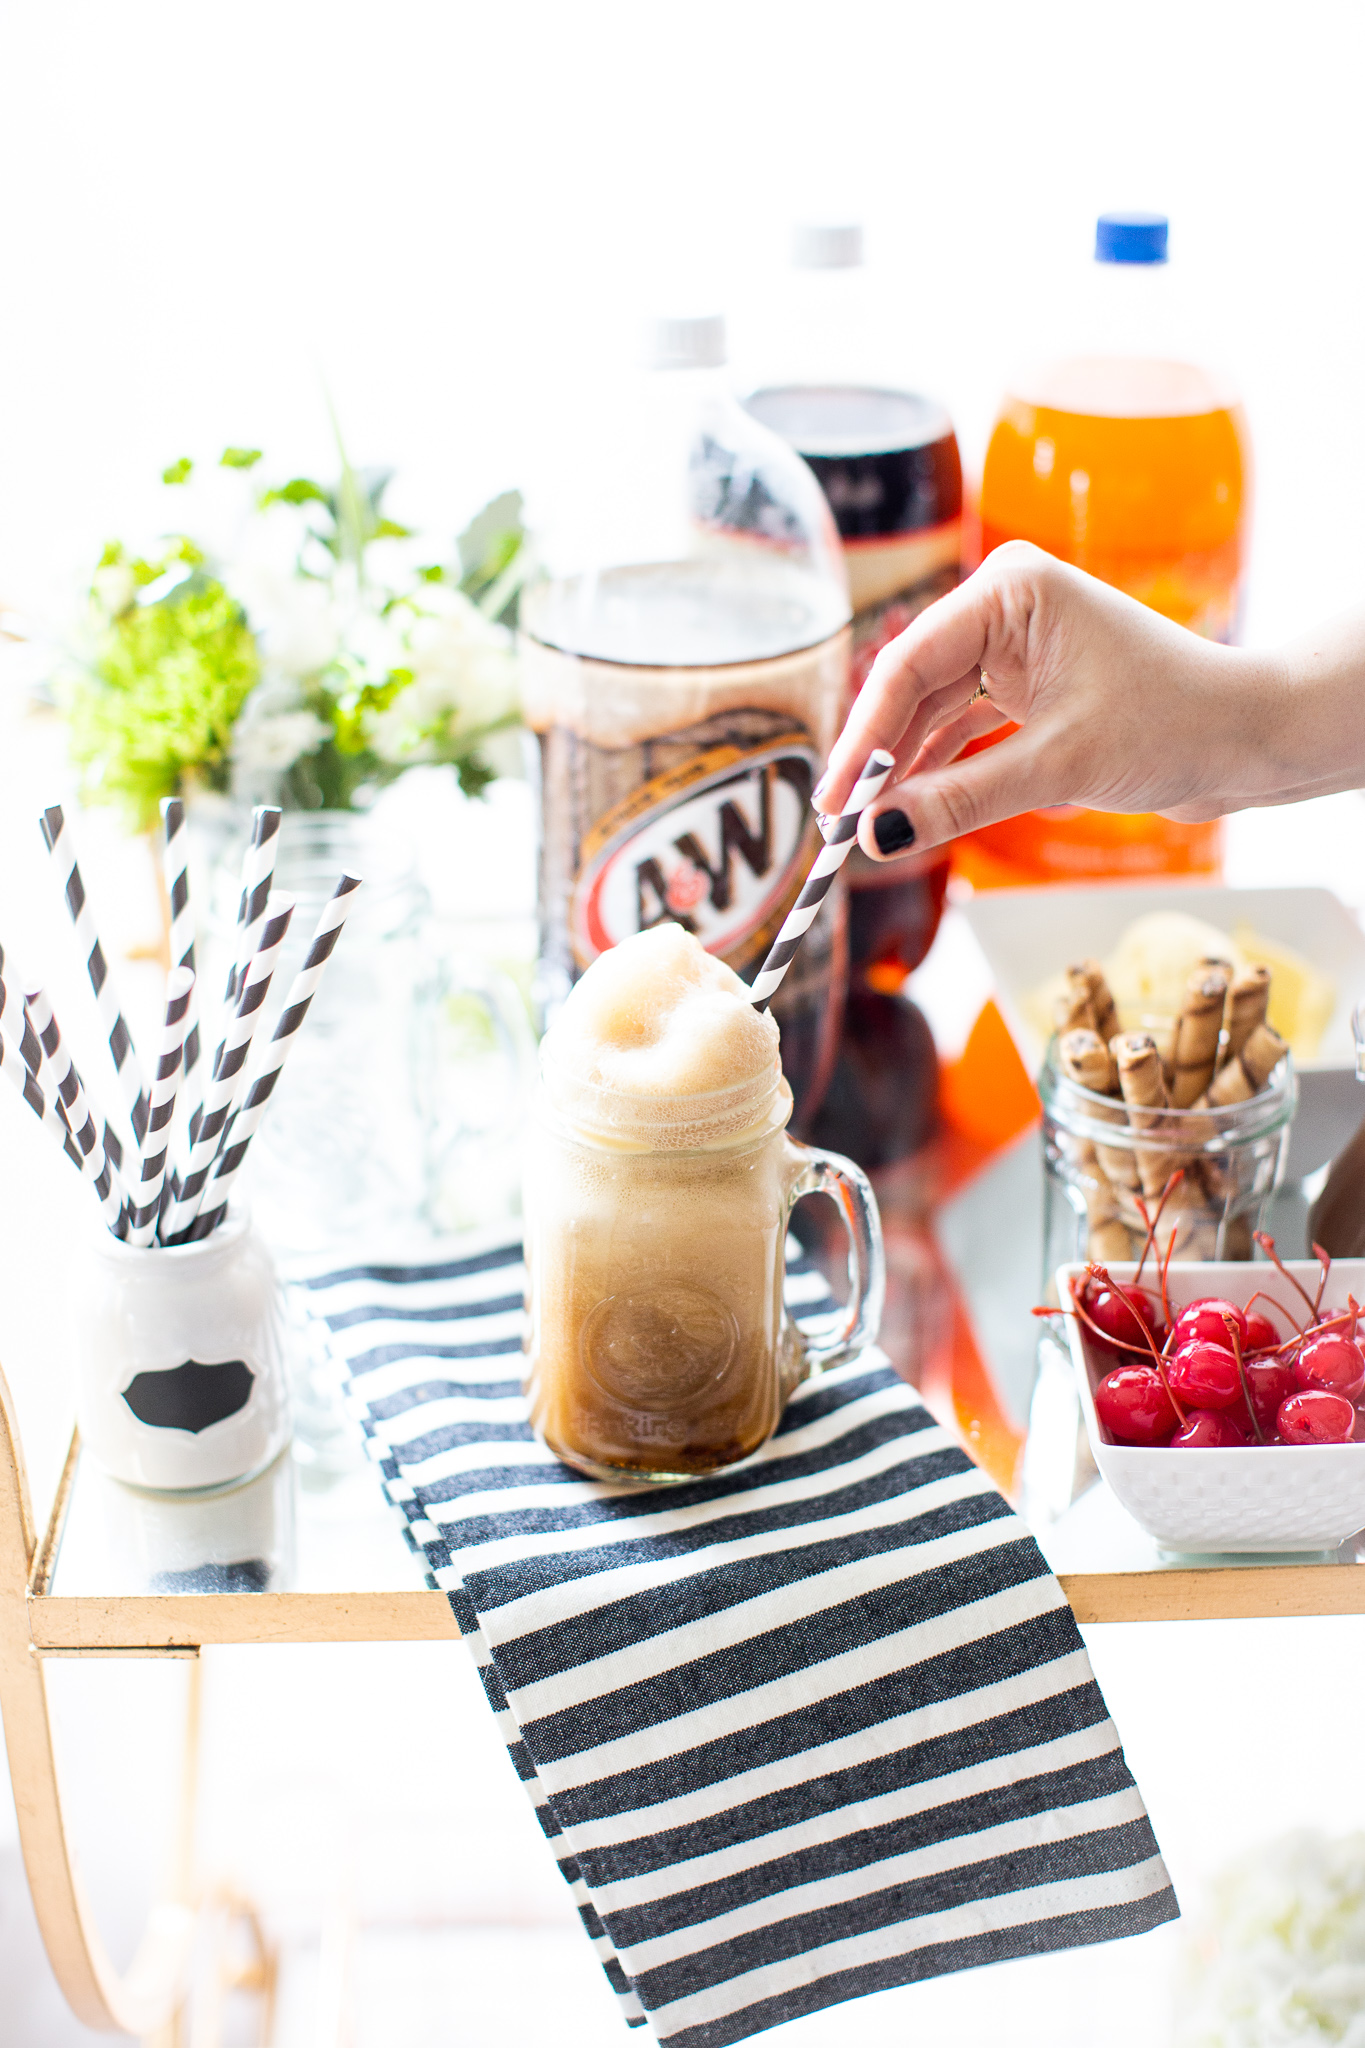 Ready to celebrate family night in a whole new way? Make your own root beer float bar with all of the best toppings, for a legendary sweet treat! | glitterinc.com | @glitterinc